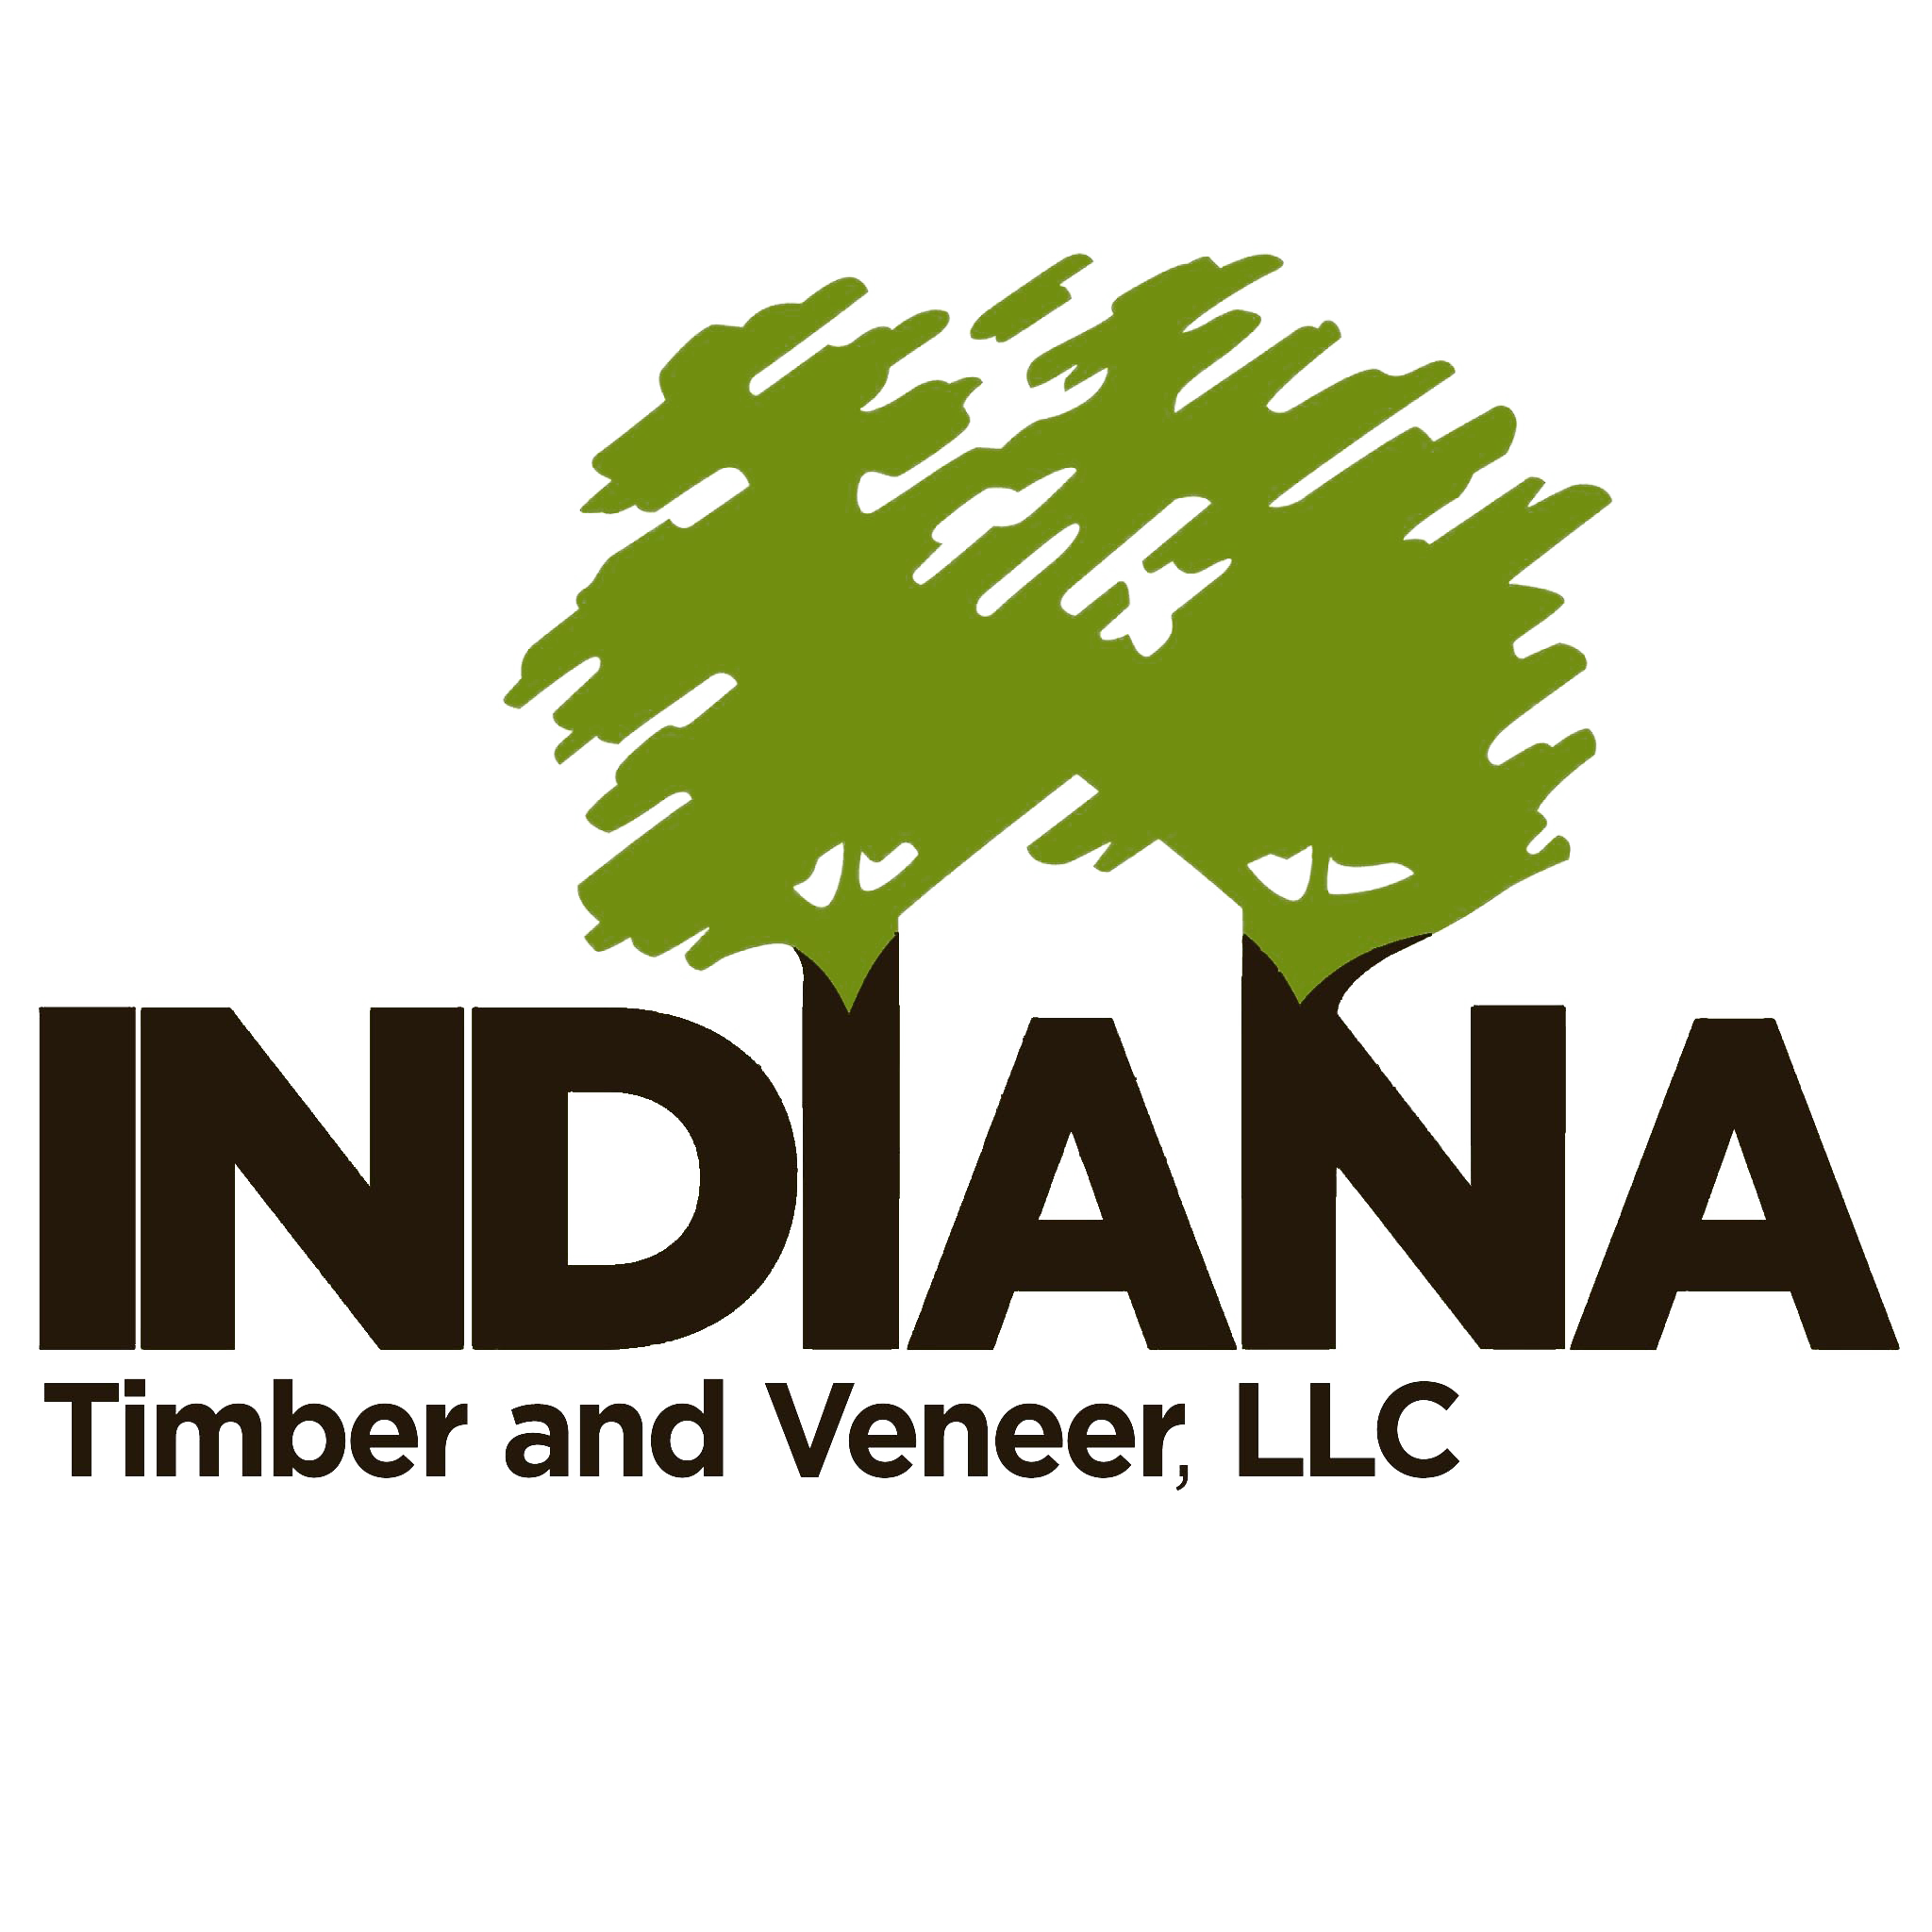 INDIANA TIMBER AND VENEER, LLC